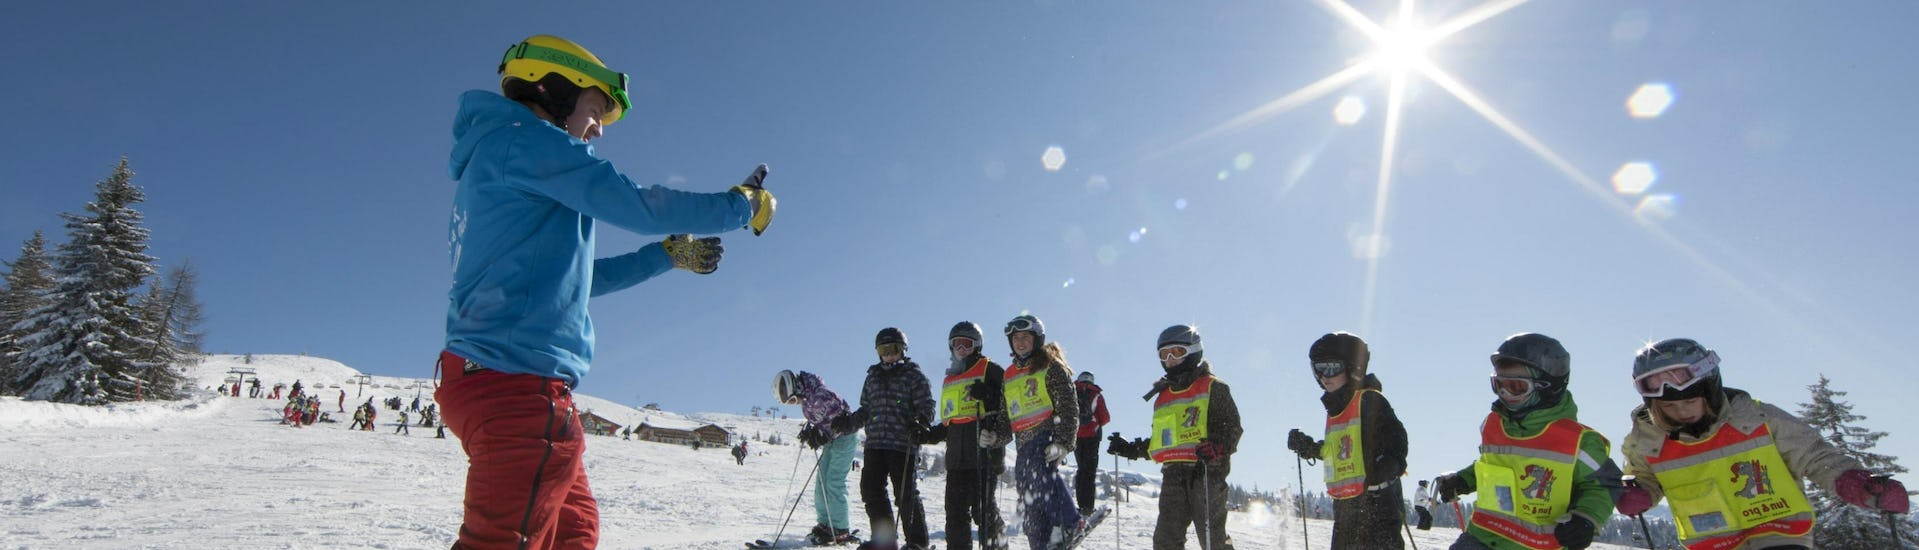 A ski instructor is holding one of the many group ski lessons in the ski resort of Avoriaz.